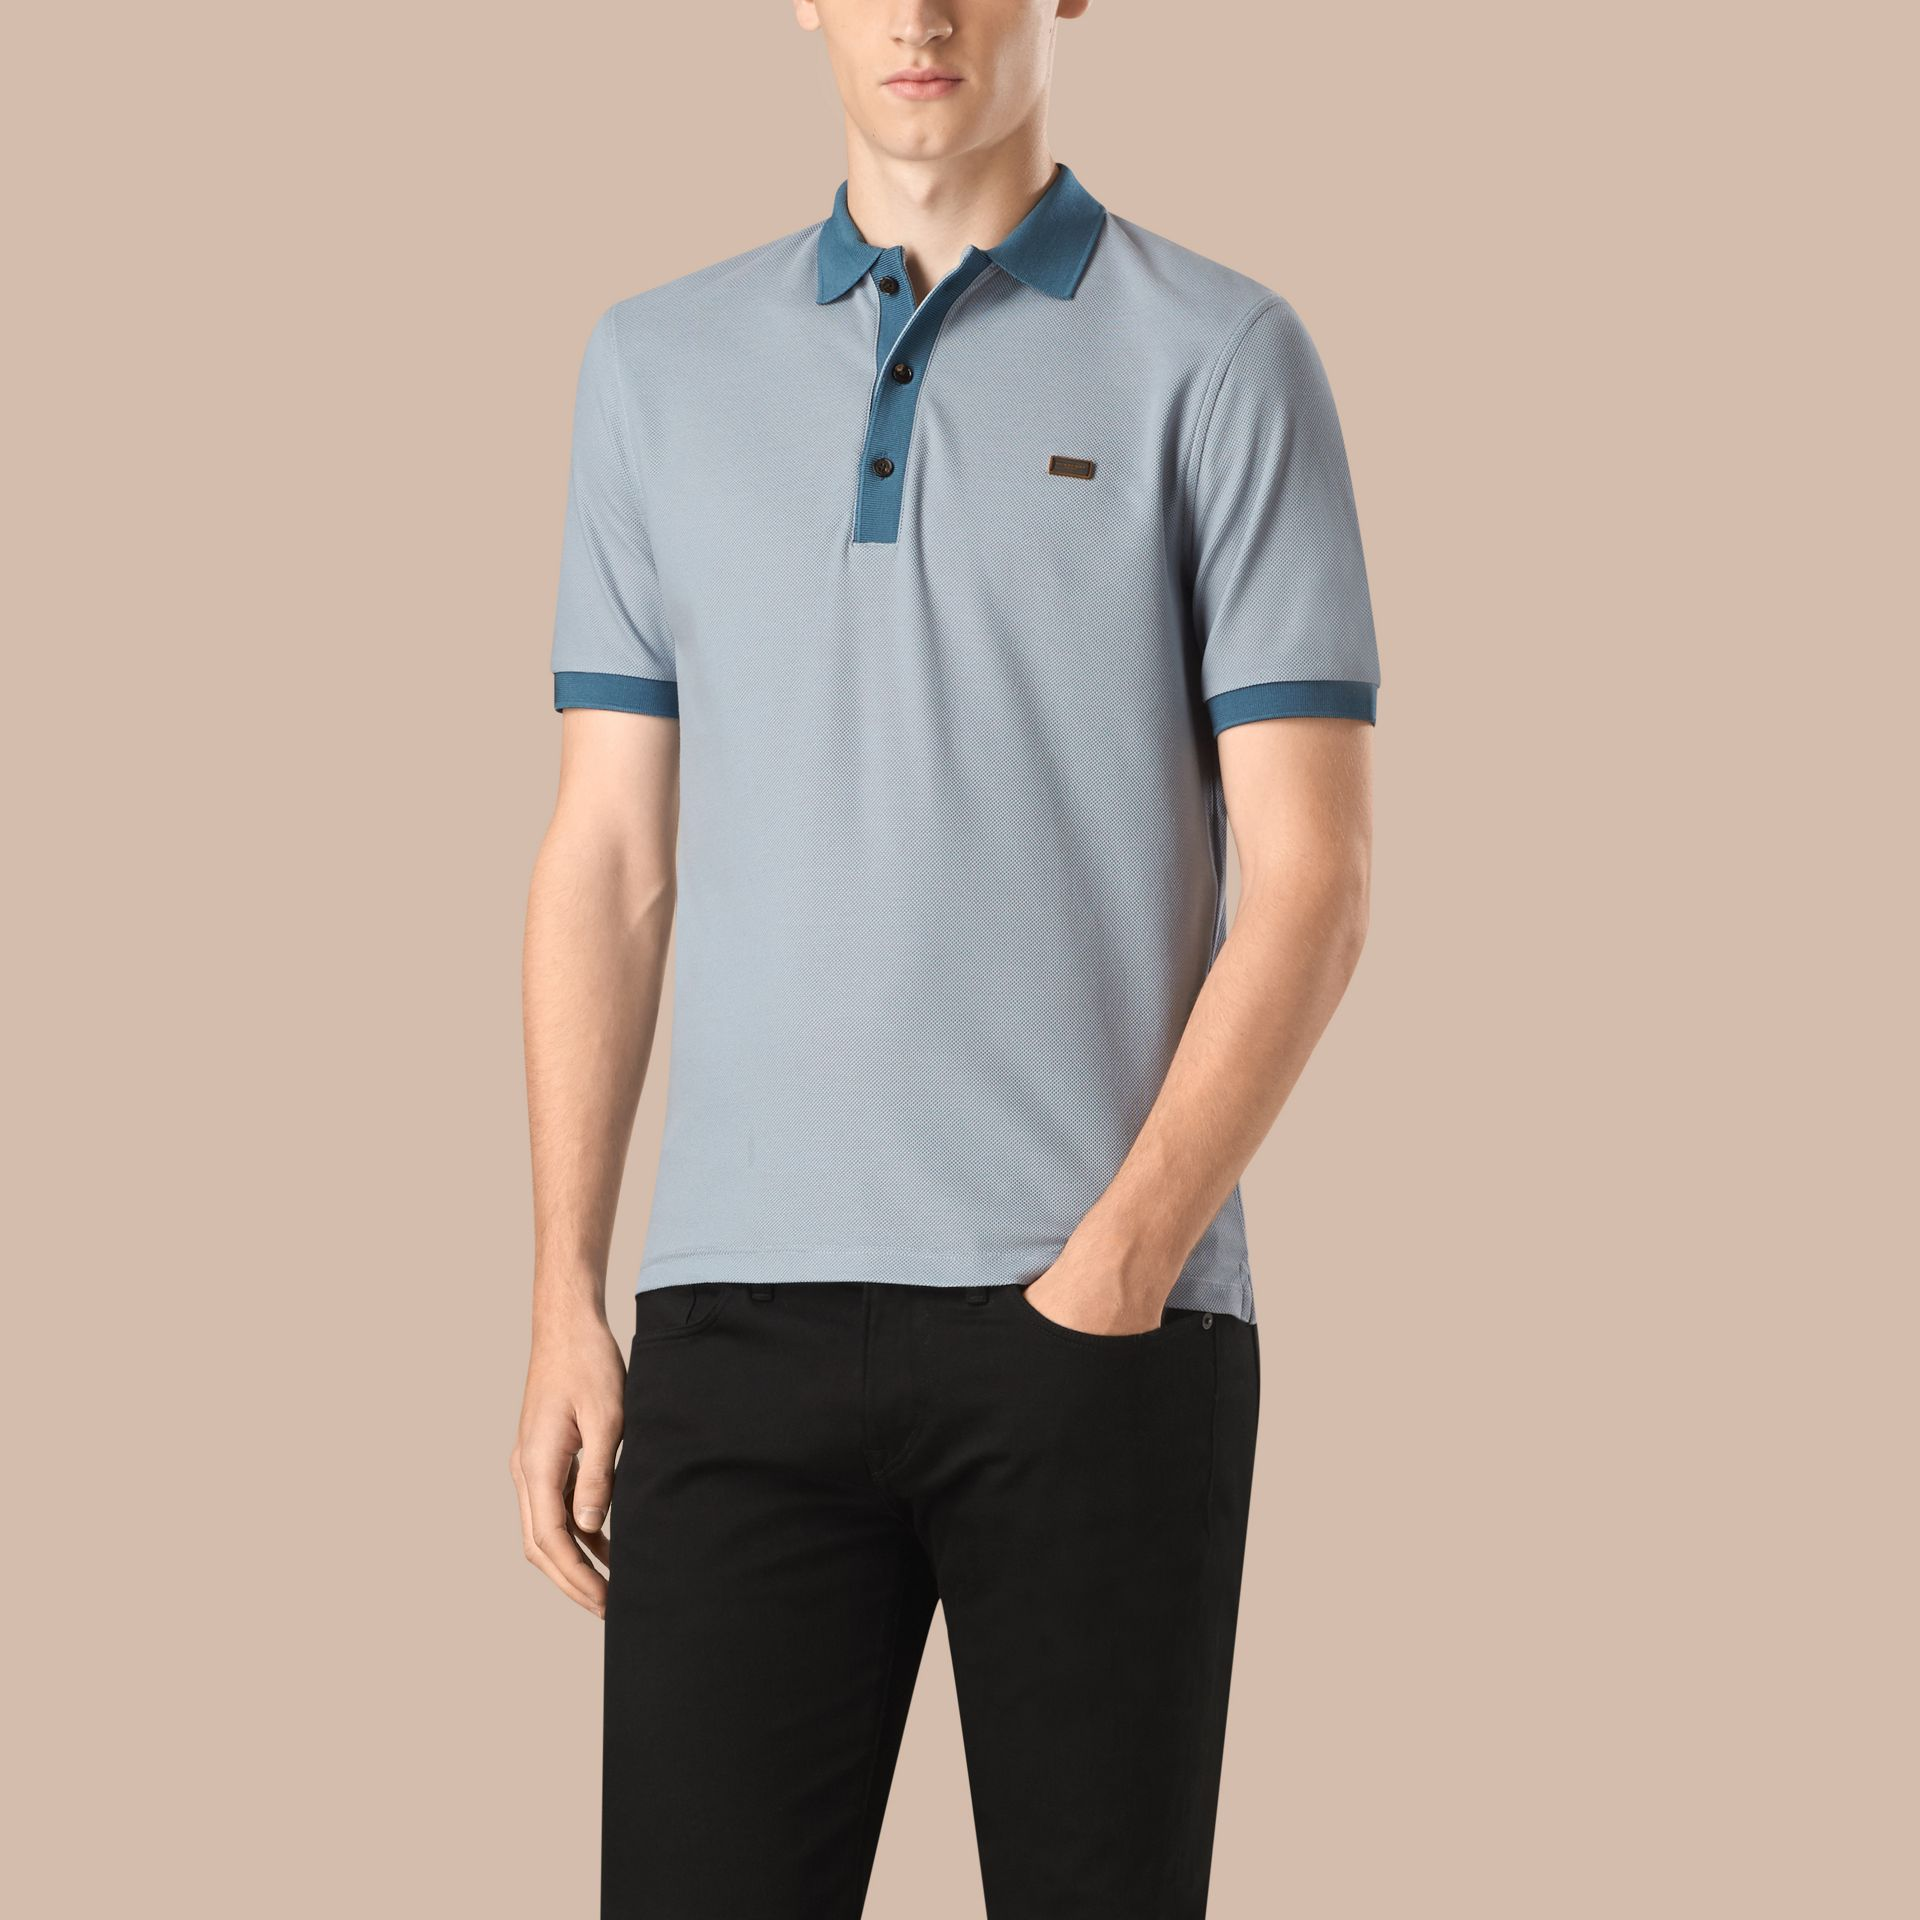 Pale sky blue/lupen blue Mercerised Cotton Piqué Polo Shirt Pale Sky Blue/lupen Blue - gallery image 1